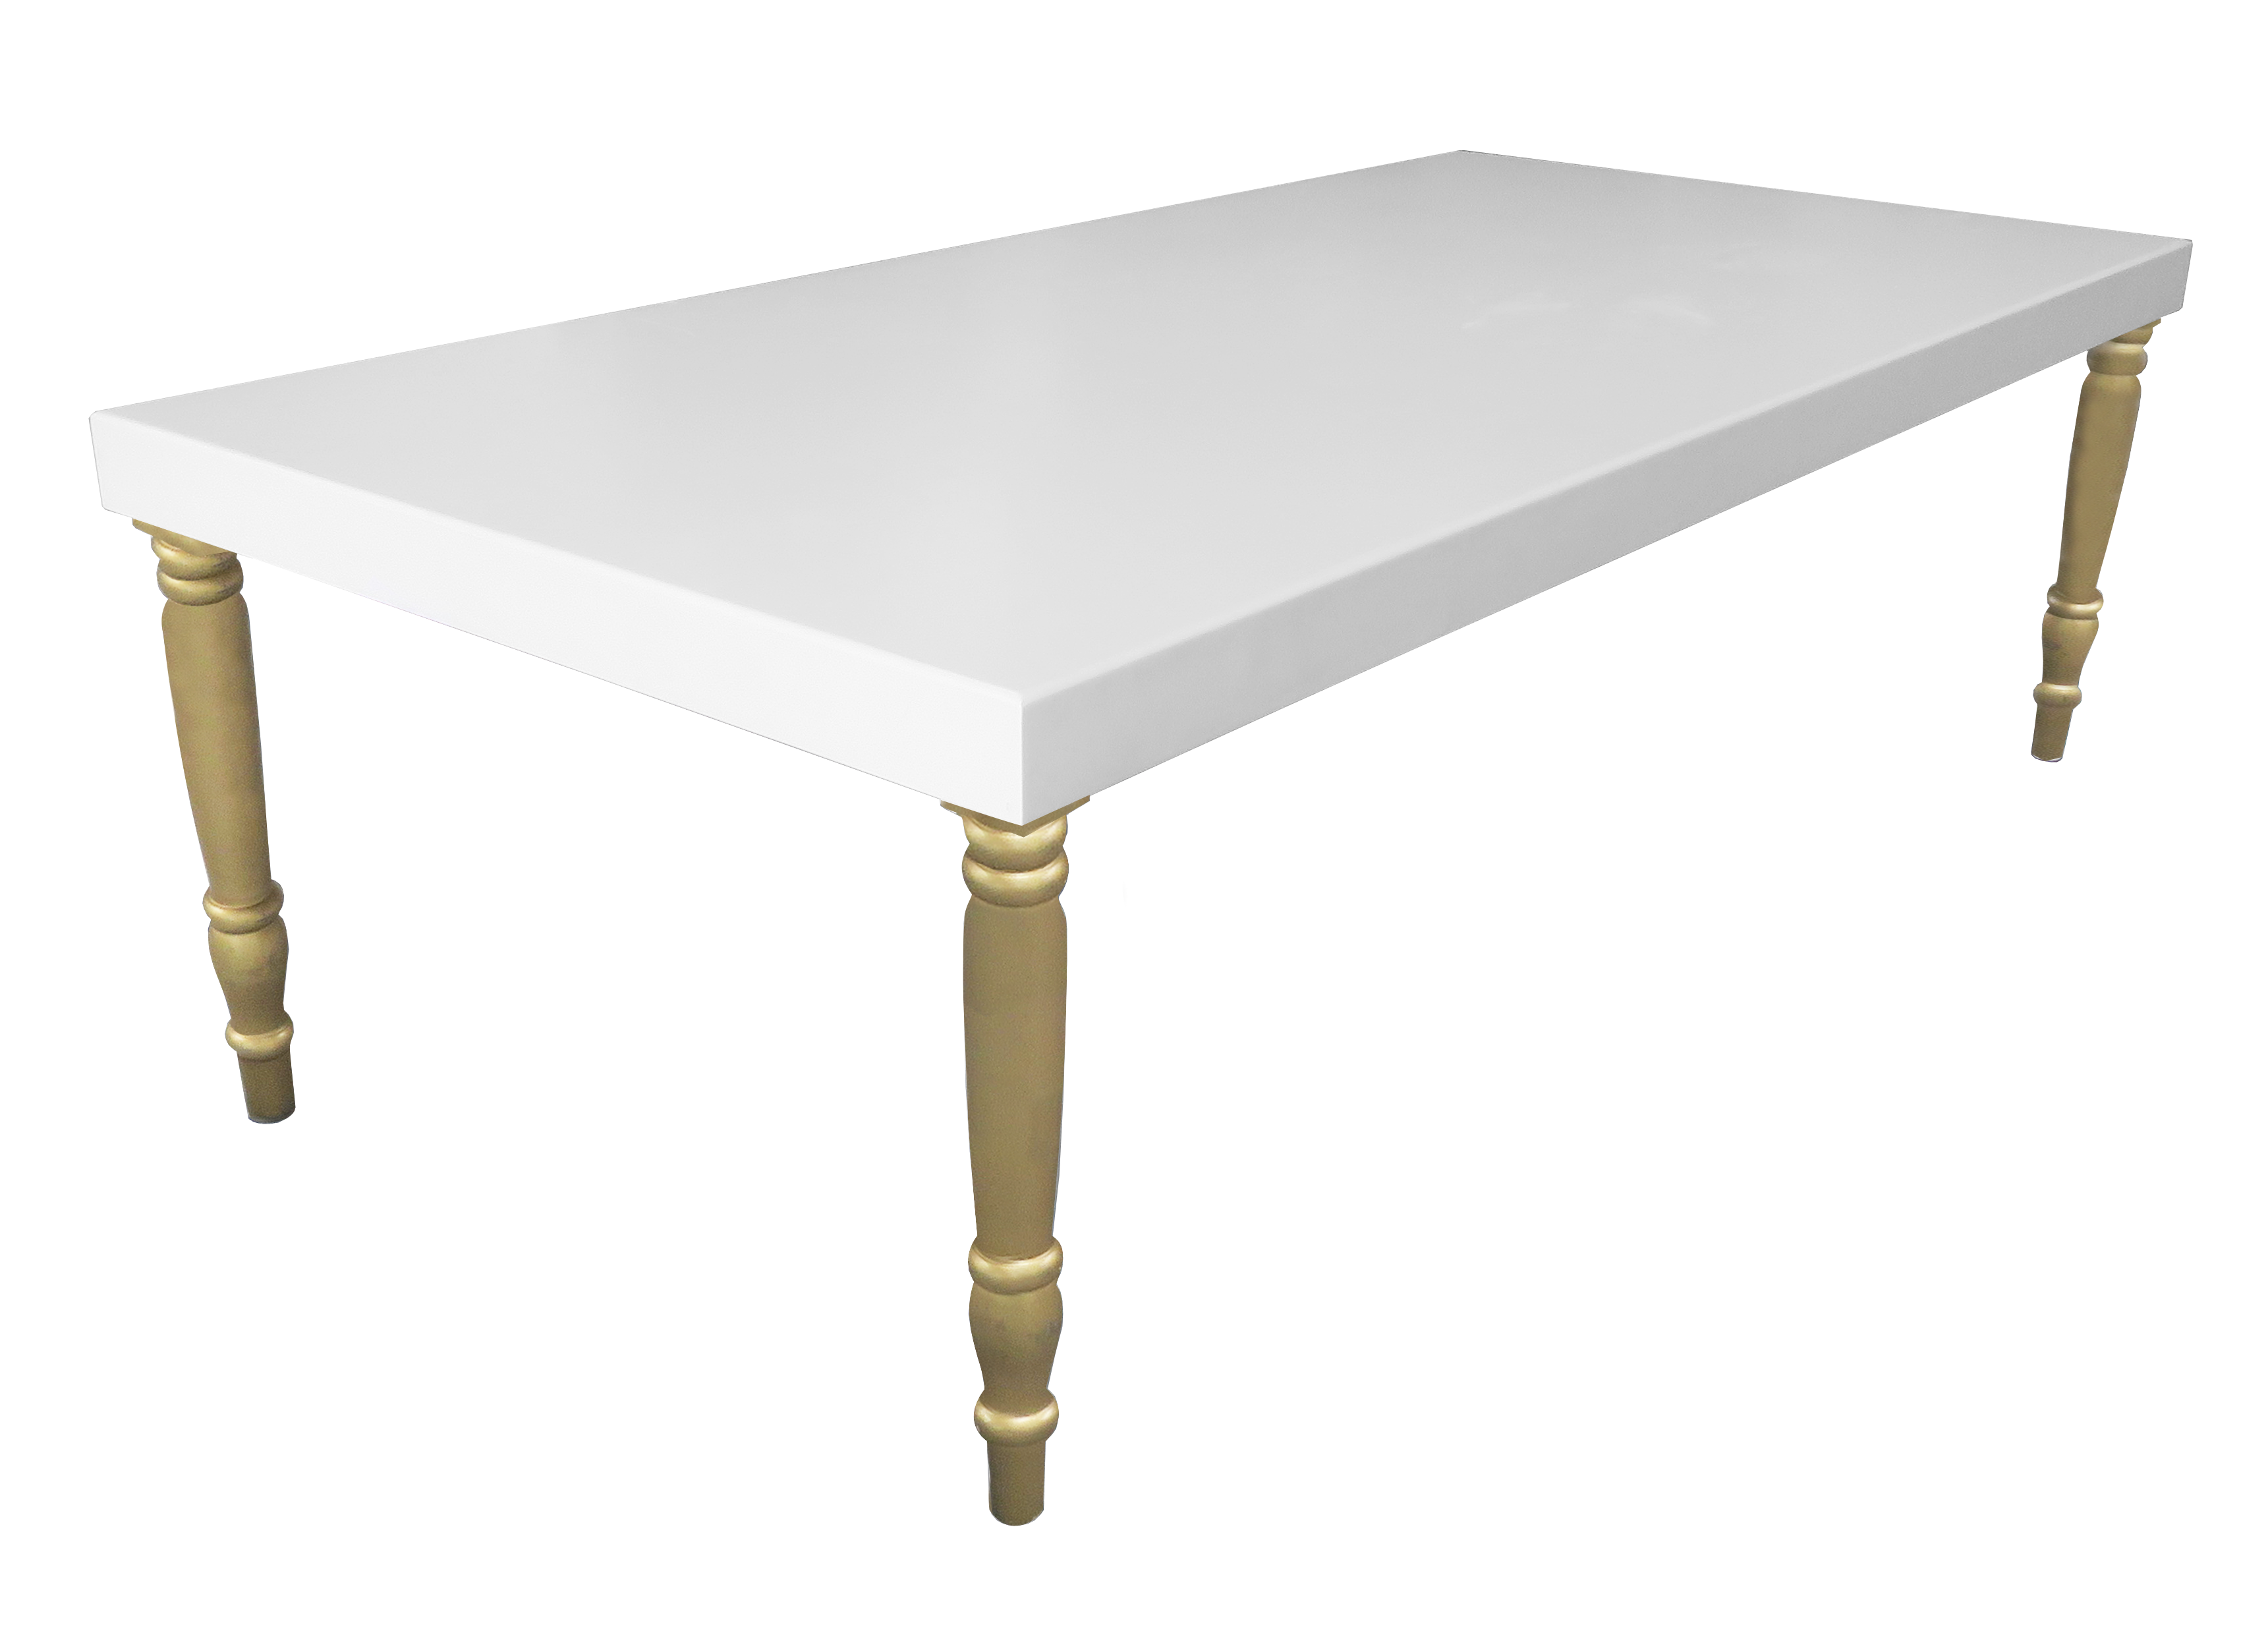 Rent Or Buy Avalon Grand Gold Dining Table Event Rental  : Avalon Grand Gold Dining Table from areeka.ae size 3442 x 2481 png 1488kB